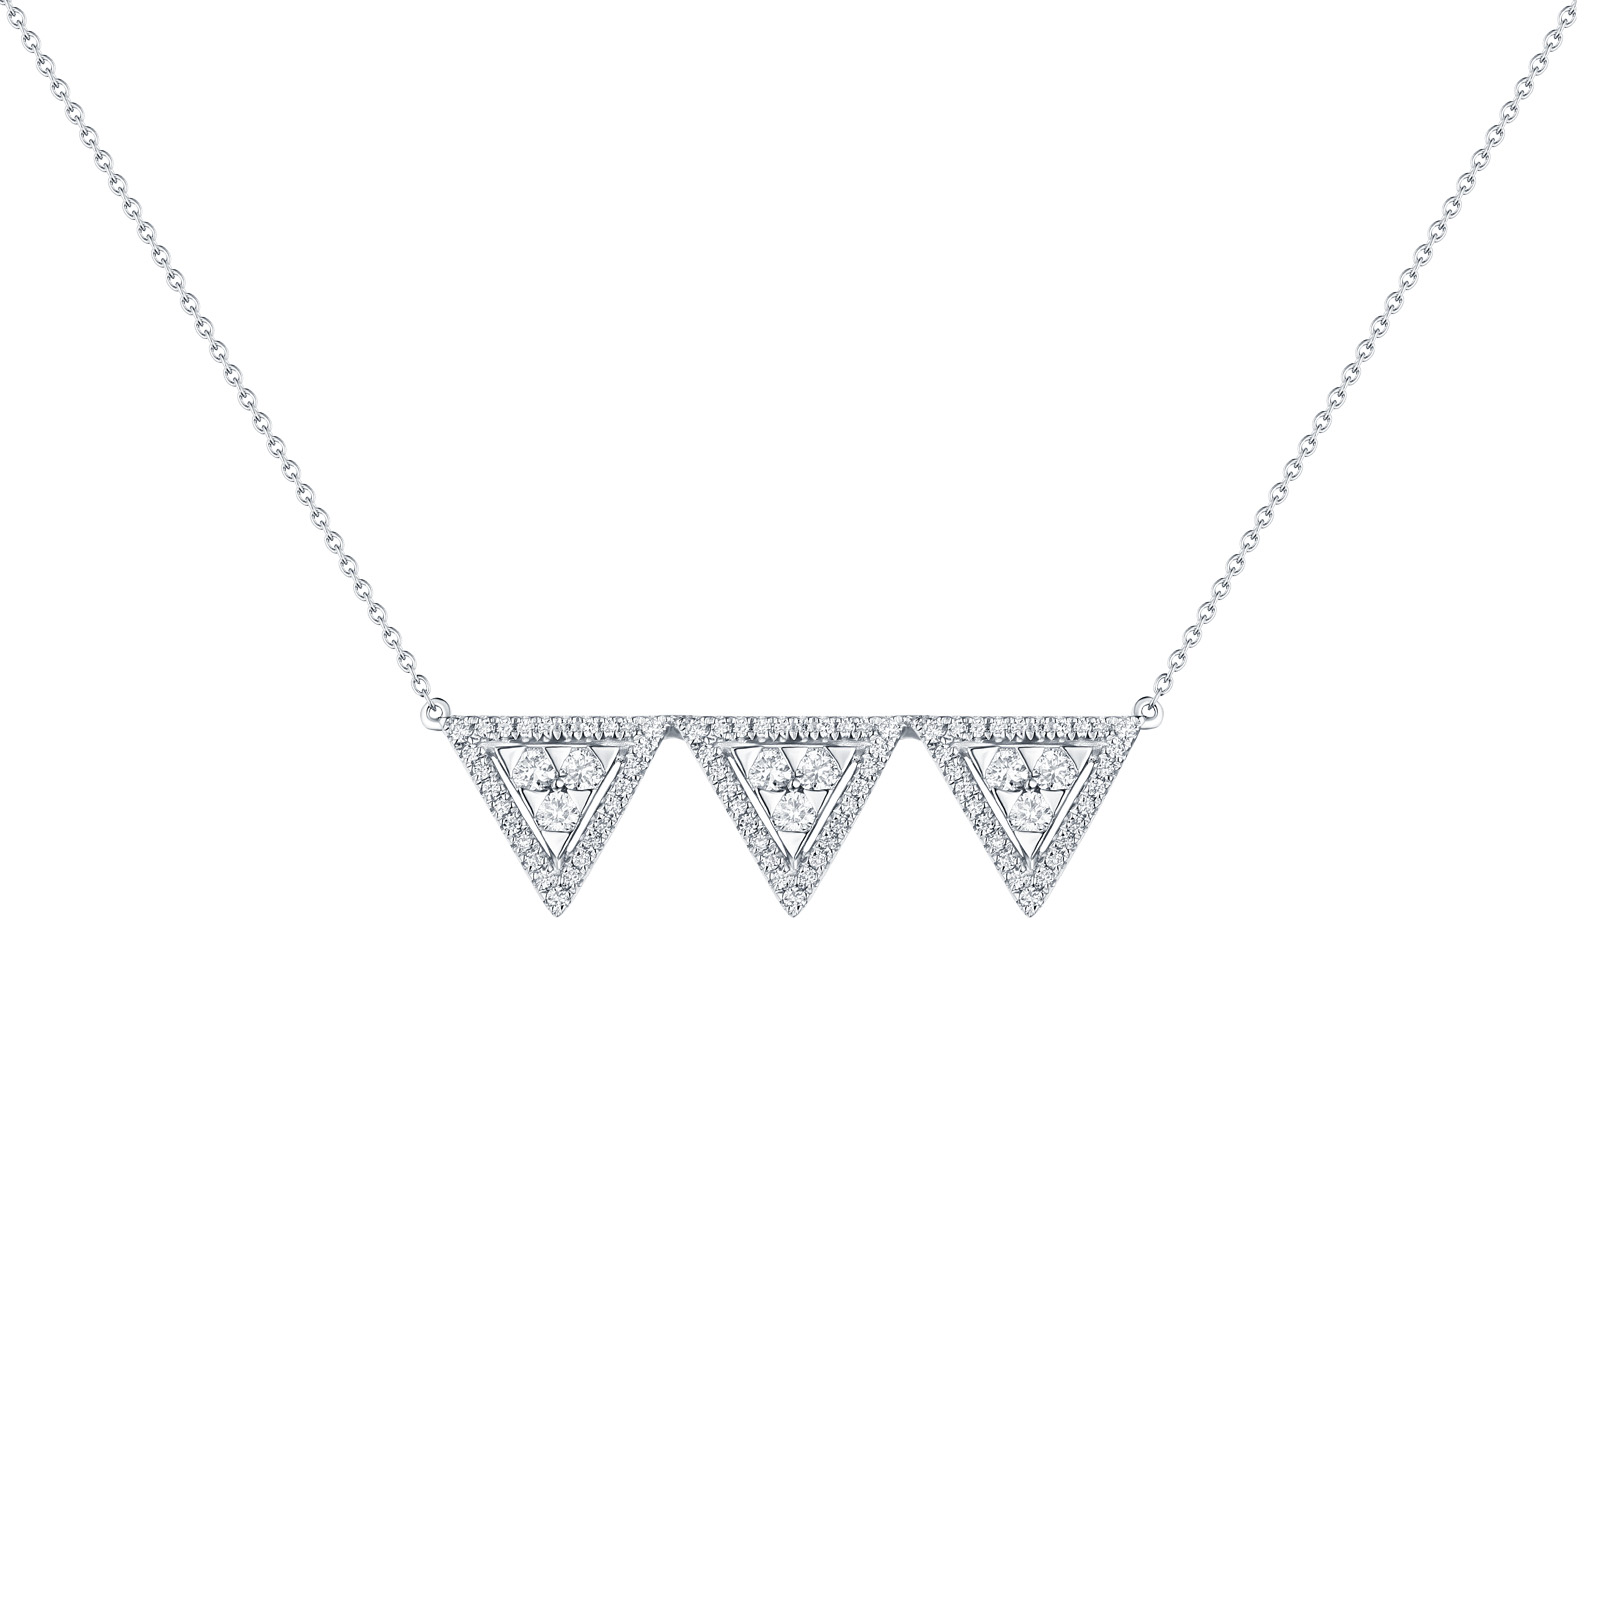 NL25105WHT- 14K White Gold Diamond Necklace, 0.46 TCW